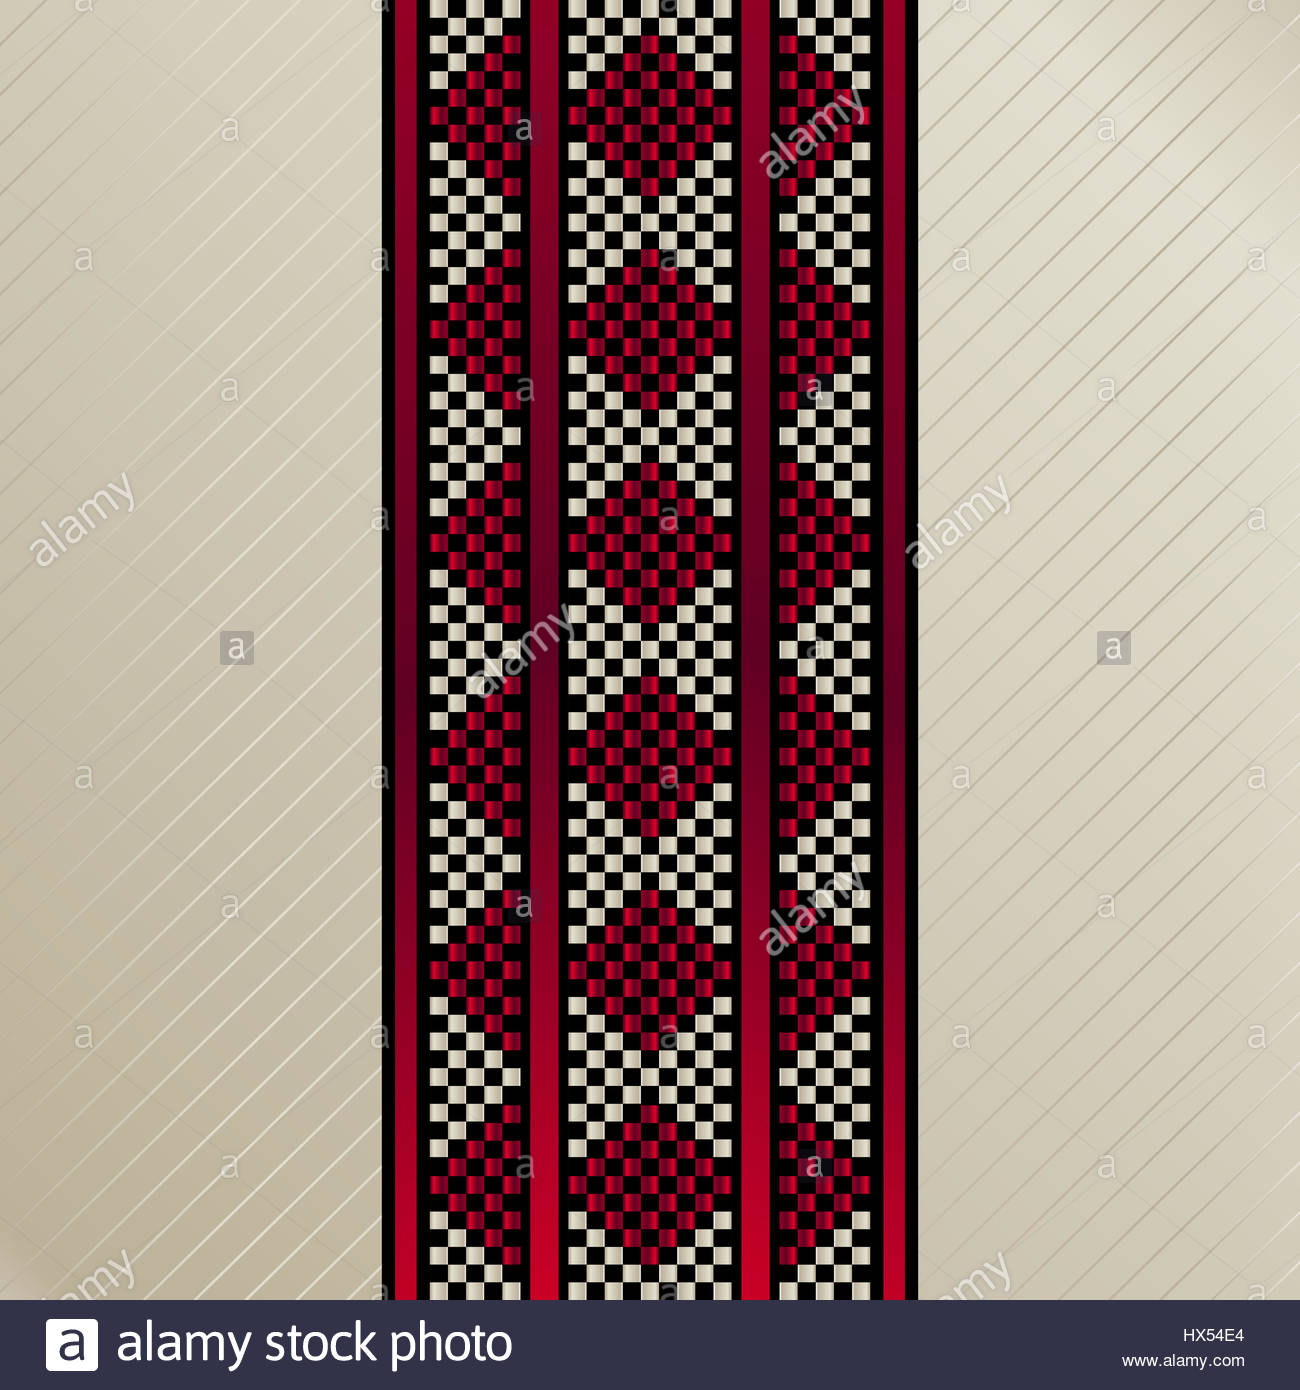 Square Tile Of An Arabian Traditional Sadu Rug Carpet Motif - Stock Image